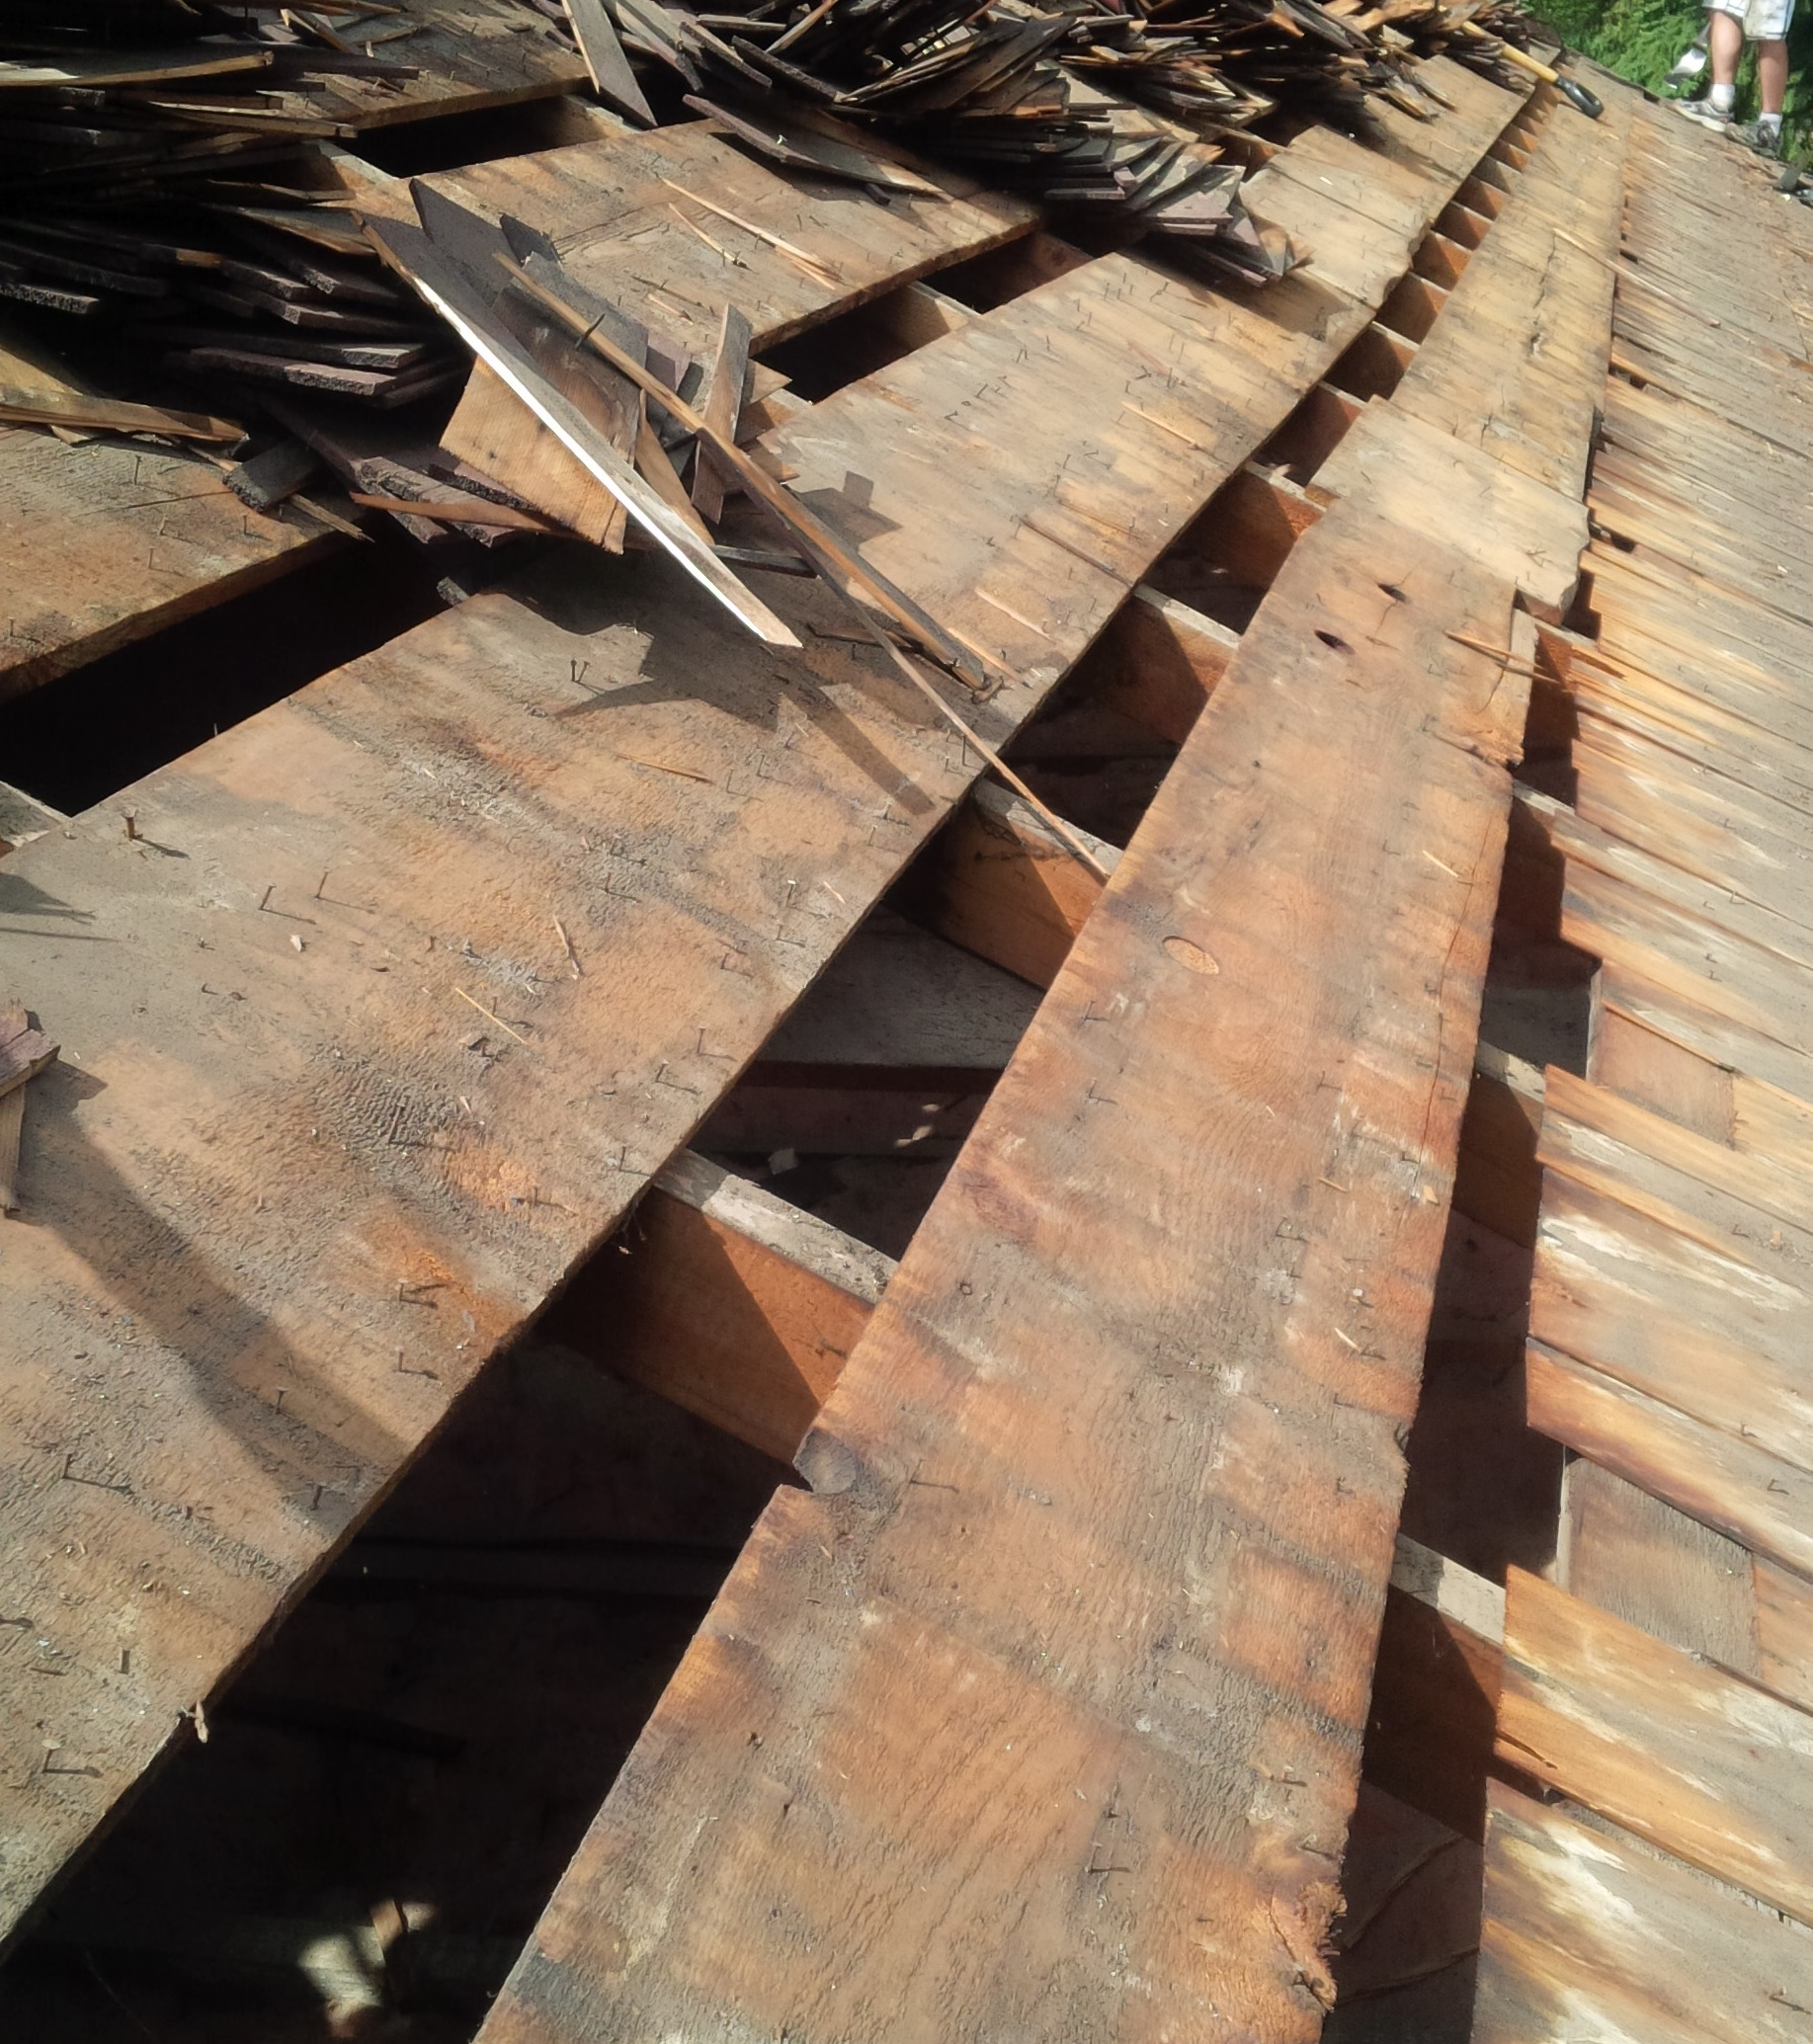 wood shake tear off reveals gaps in roof deck